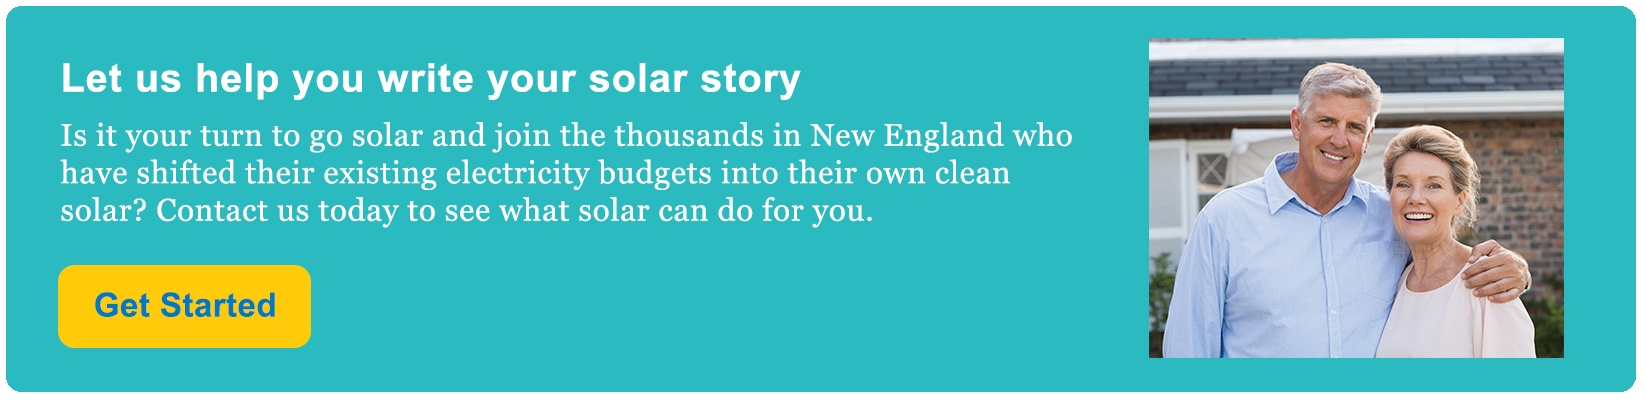 Contact us today to go solar and join the thousands in New England who have shifted their existing electricity budgets into their own clean solar.